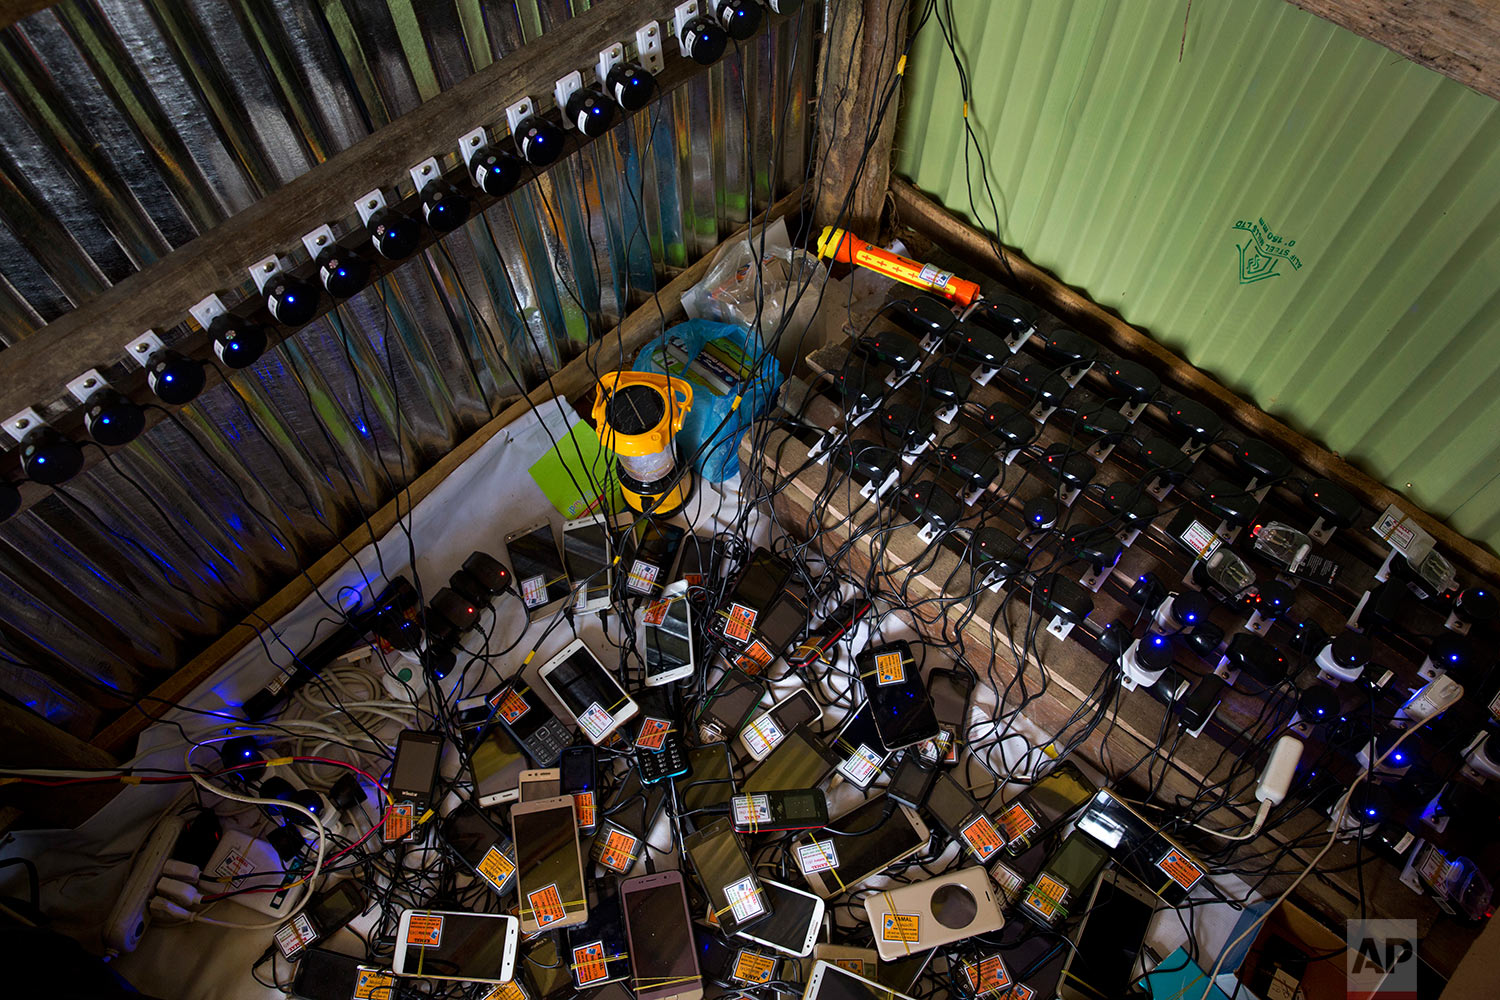 In this Saturday, Sept. 23, 2017 photo, dozens of cellphones charge in a makeshift shop for a price of five taka (US$ 0.06), in Lambashia, near Kutupalong. (AP Photo/Bernat Armangue)